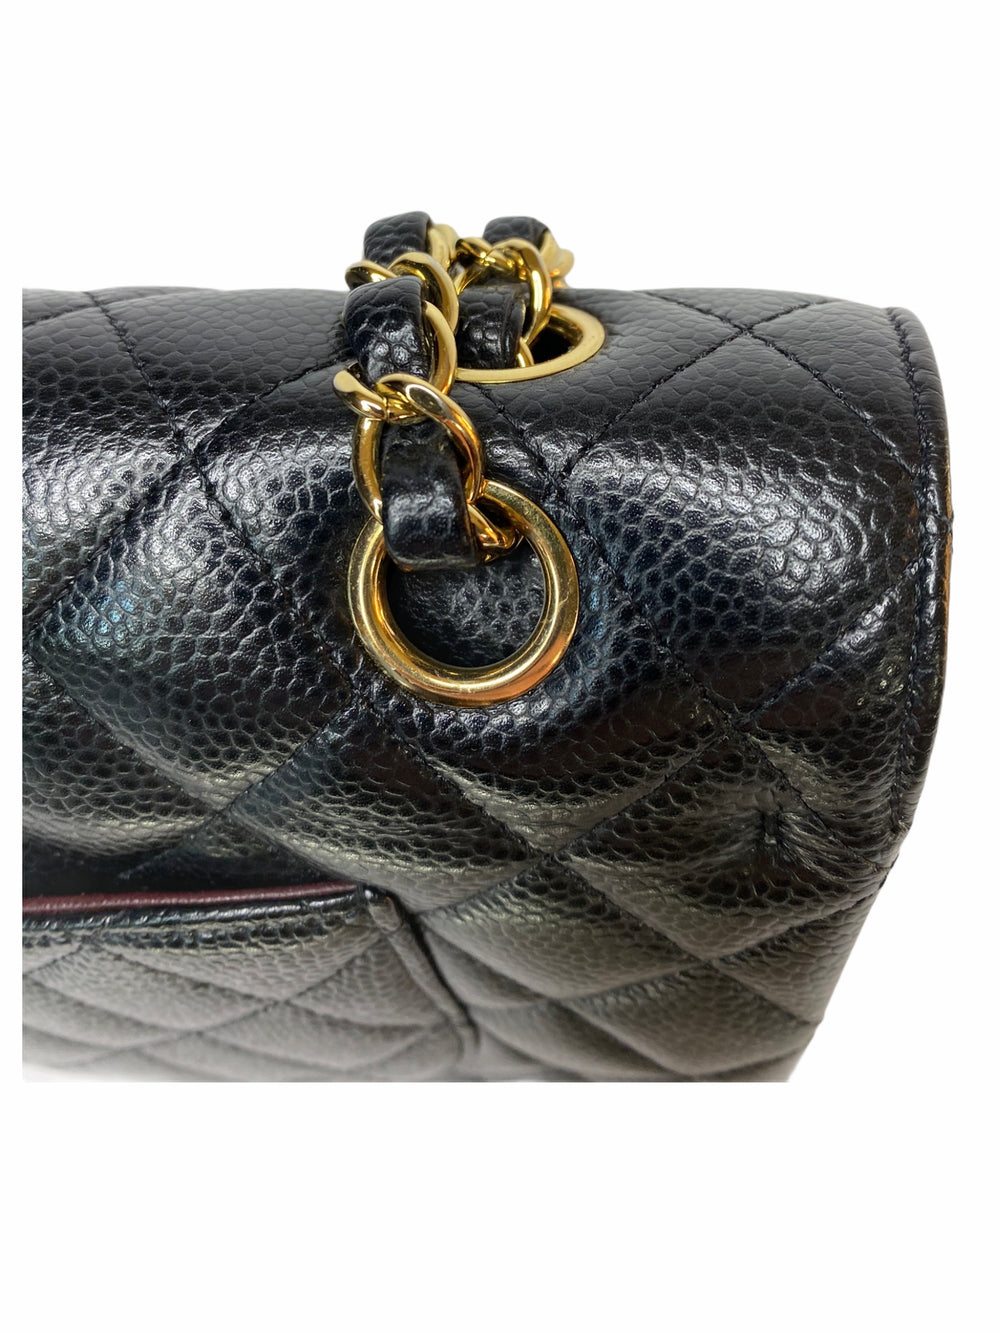 Chanel Classic Caviar Leather Medium Double Flap - As Seen on Instagram 11/10/2020